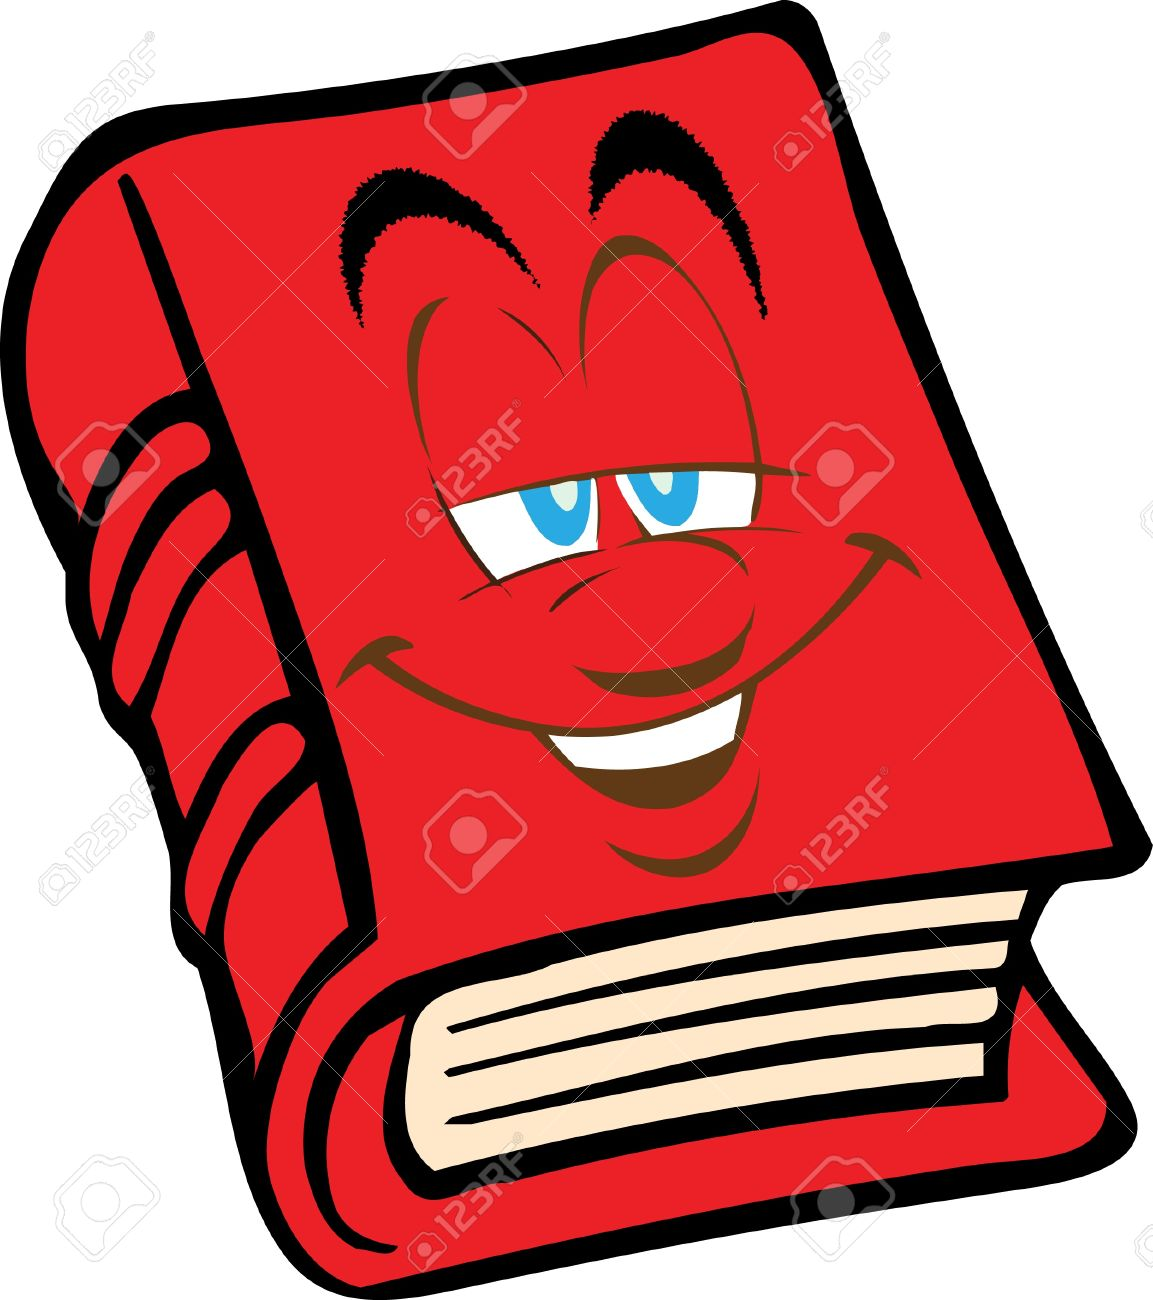 red book with the face royalty free cliparts vectors and stock rh 123rf com Laughing Smiley Face Clip Art Winking Smiley Face Clip Art